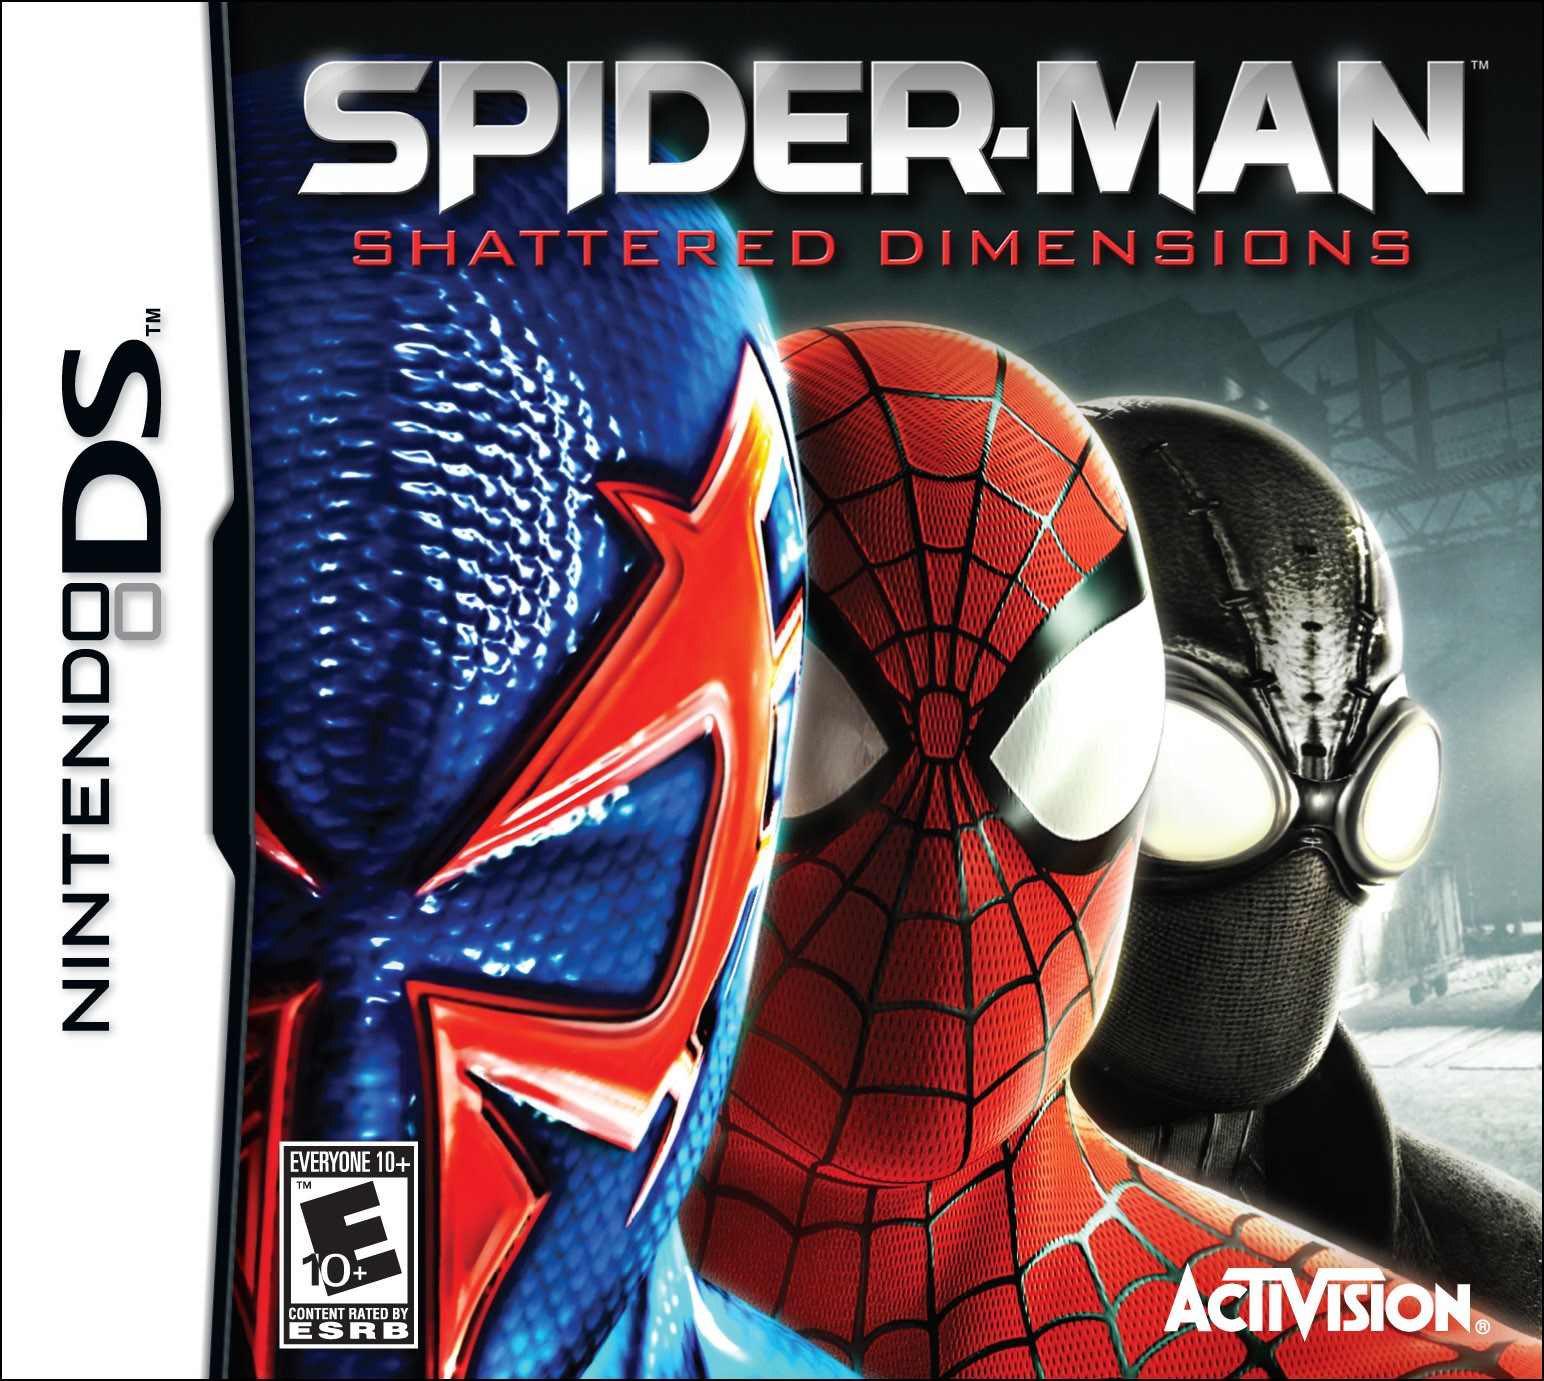 Spider-Man: Shattered Dimensions - NDS Boxart